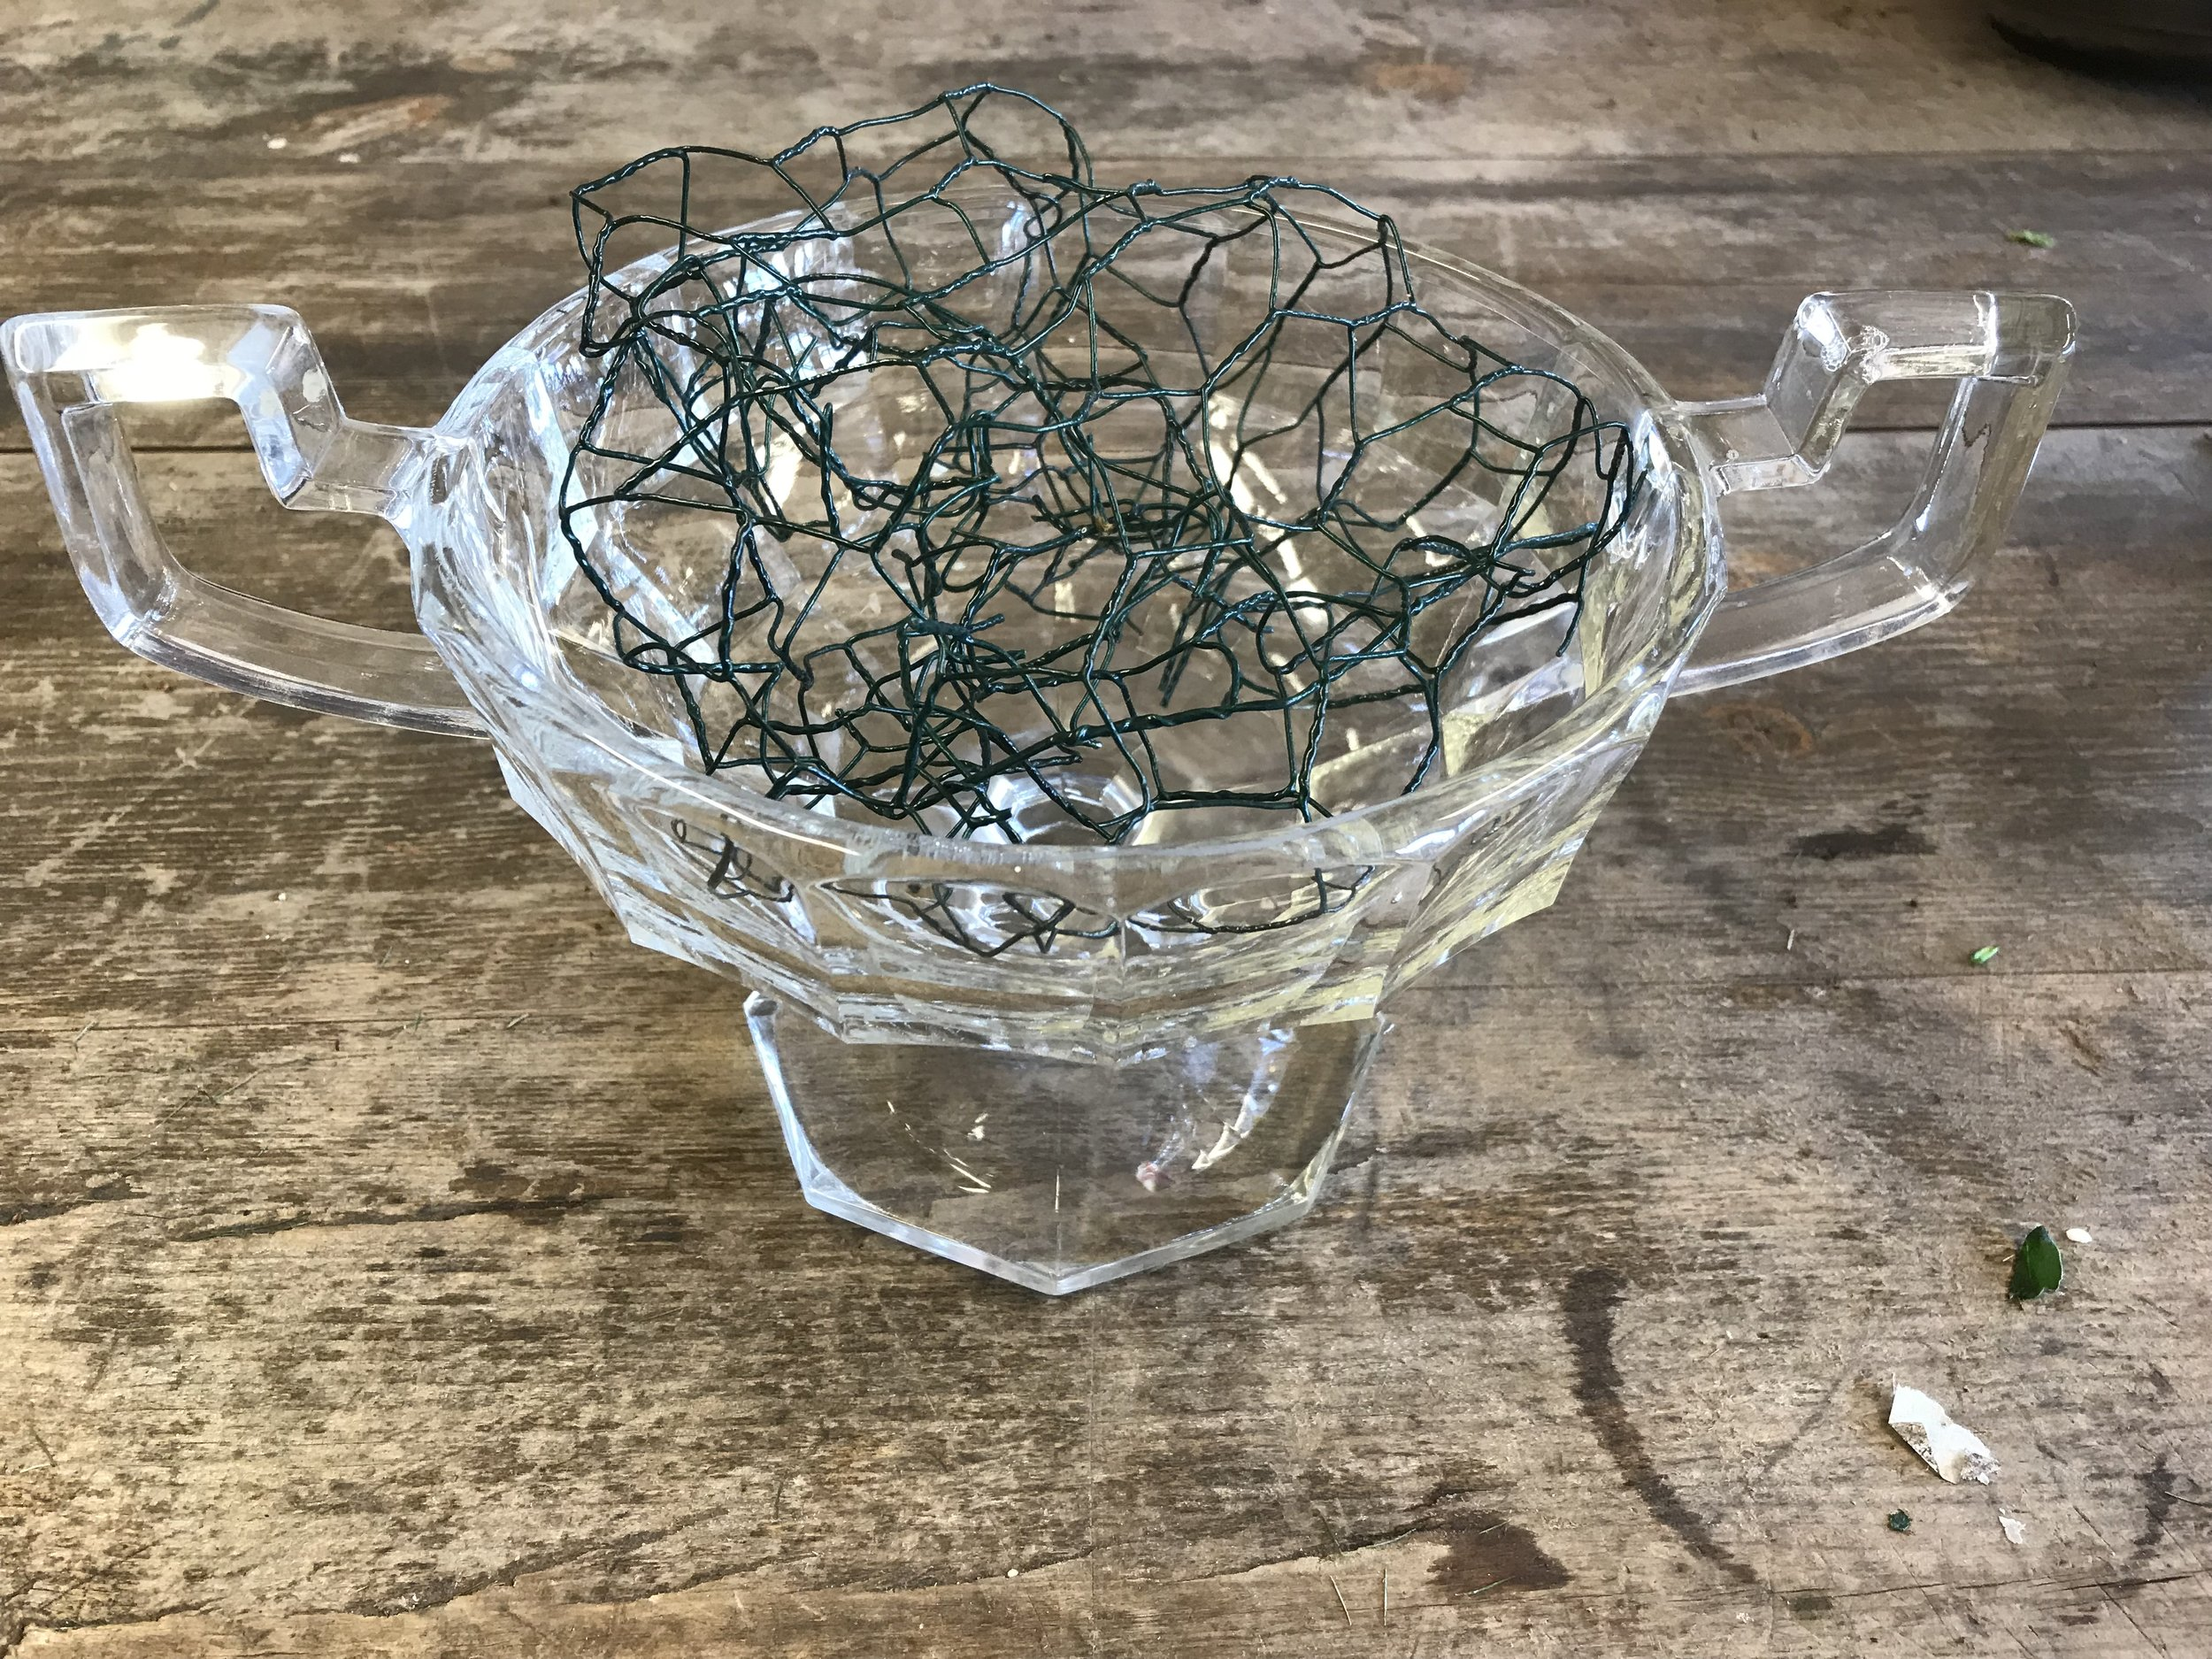 My container with scrunched up chicken wire